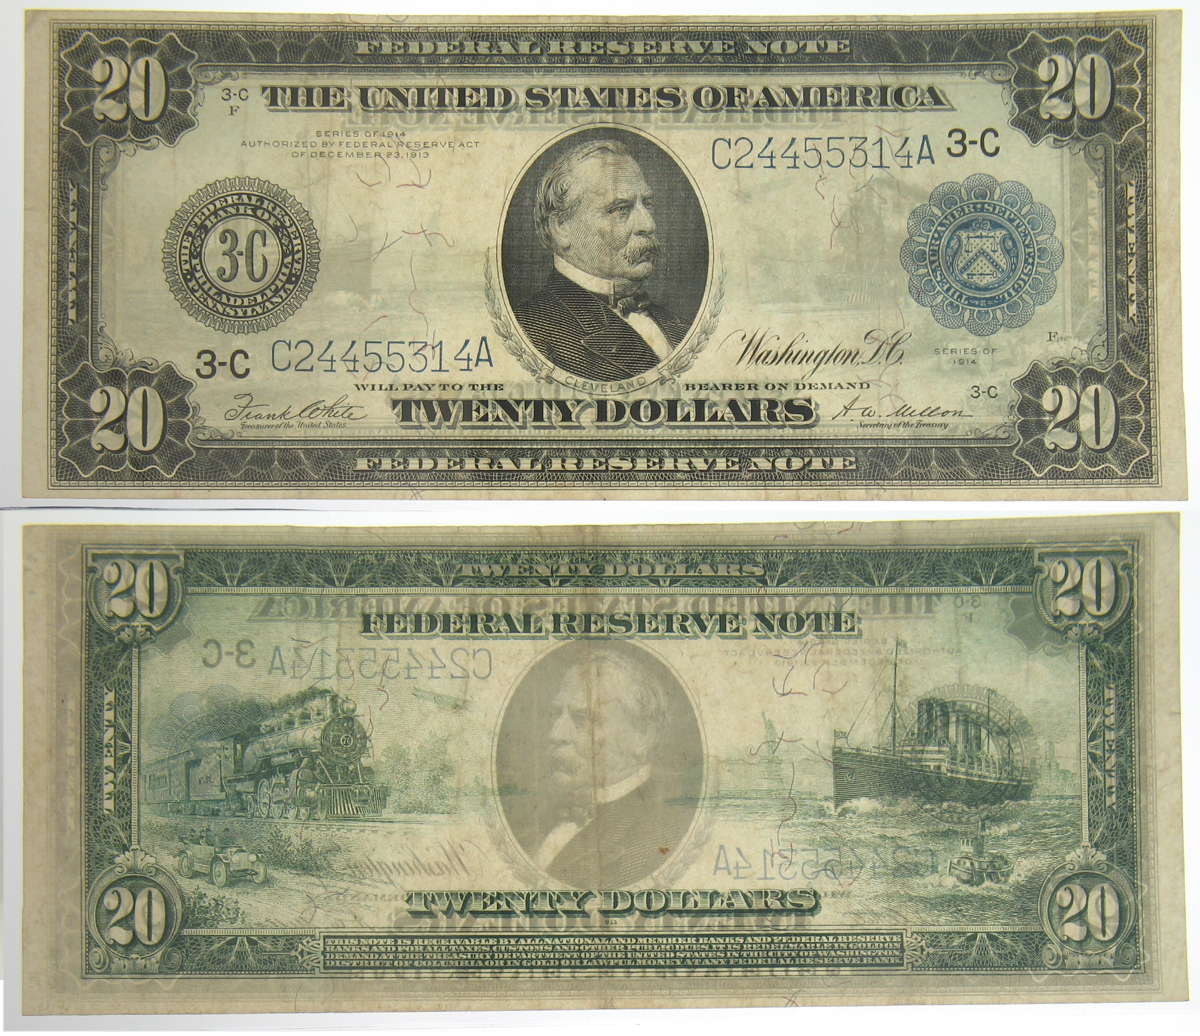 1914 Series $20 Federal Reserve Note